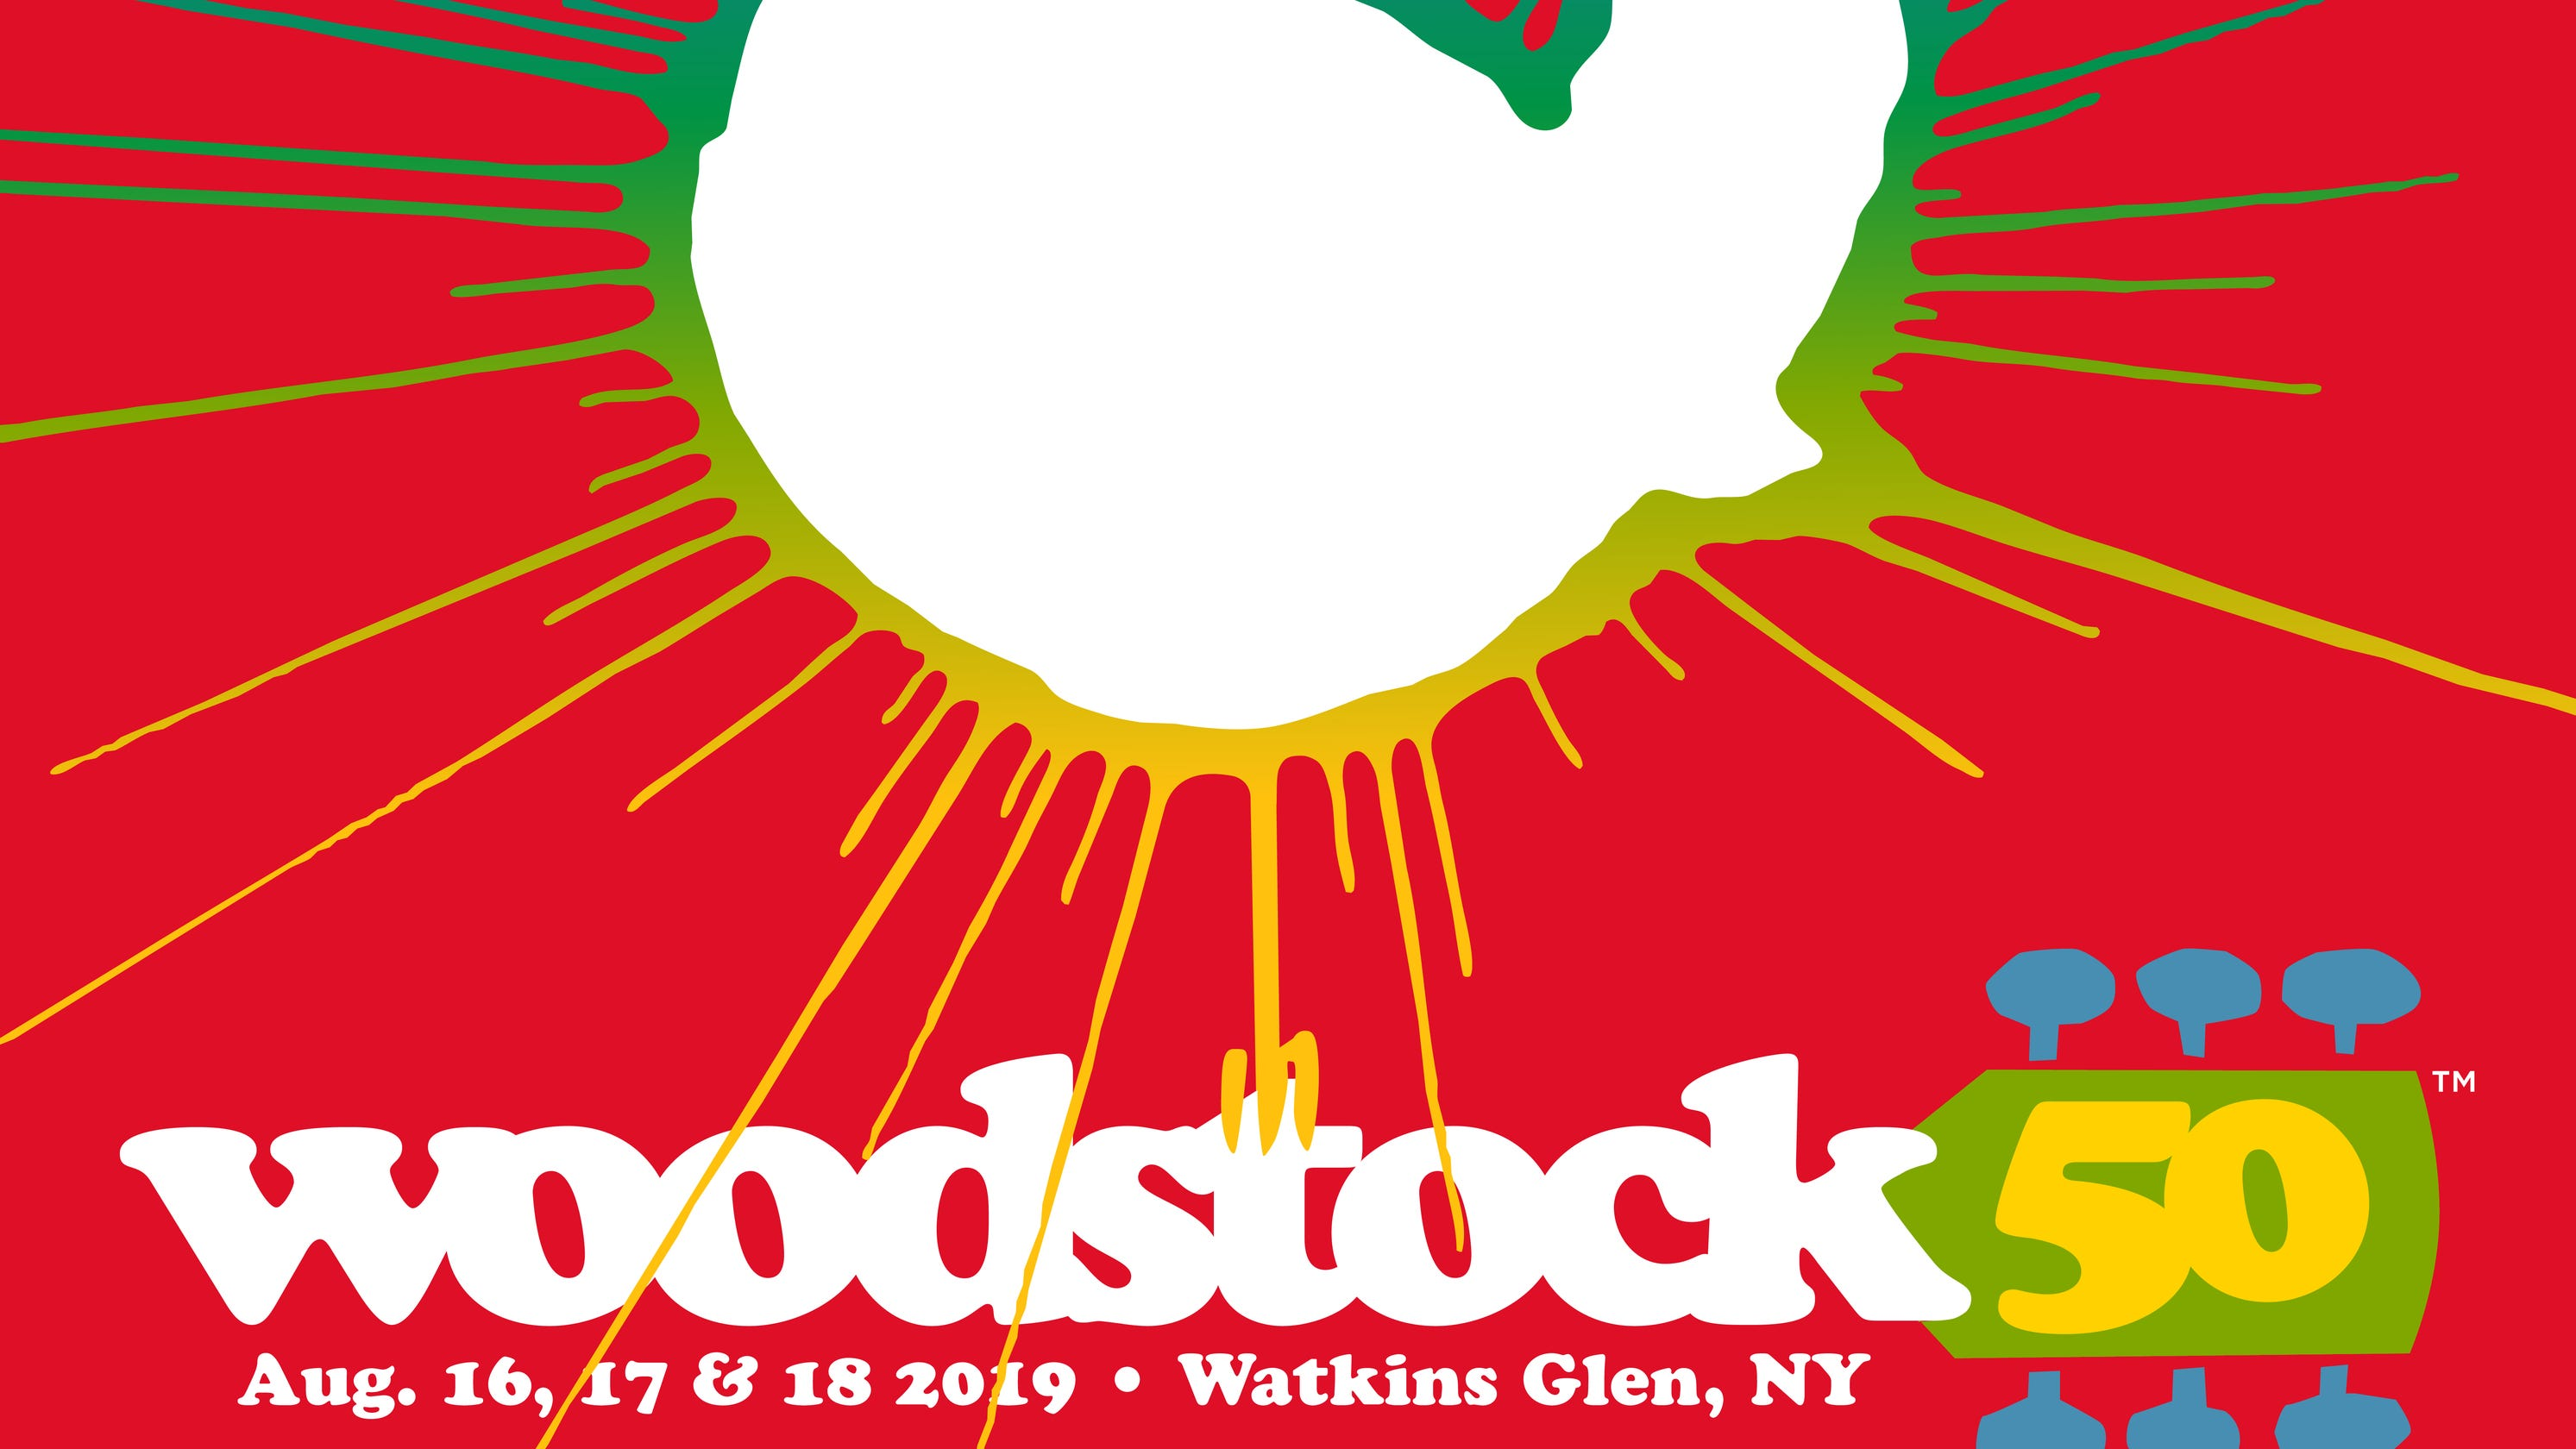 Woodstock 50 cancelled, Dentsu Aegis says  Festival says it's still on